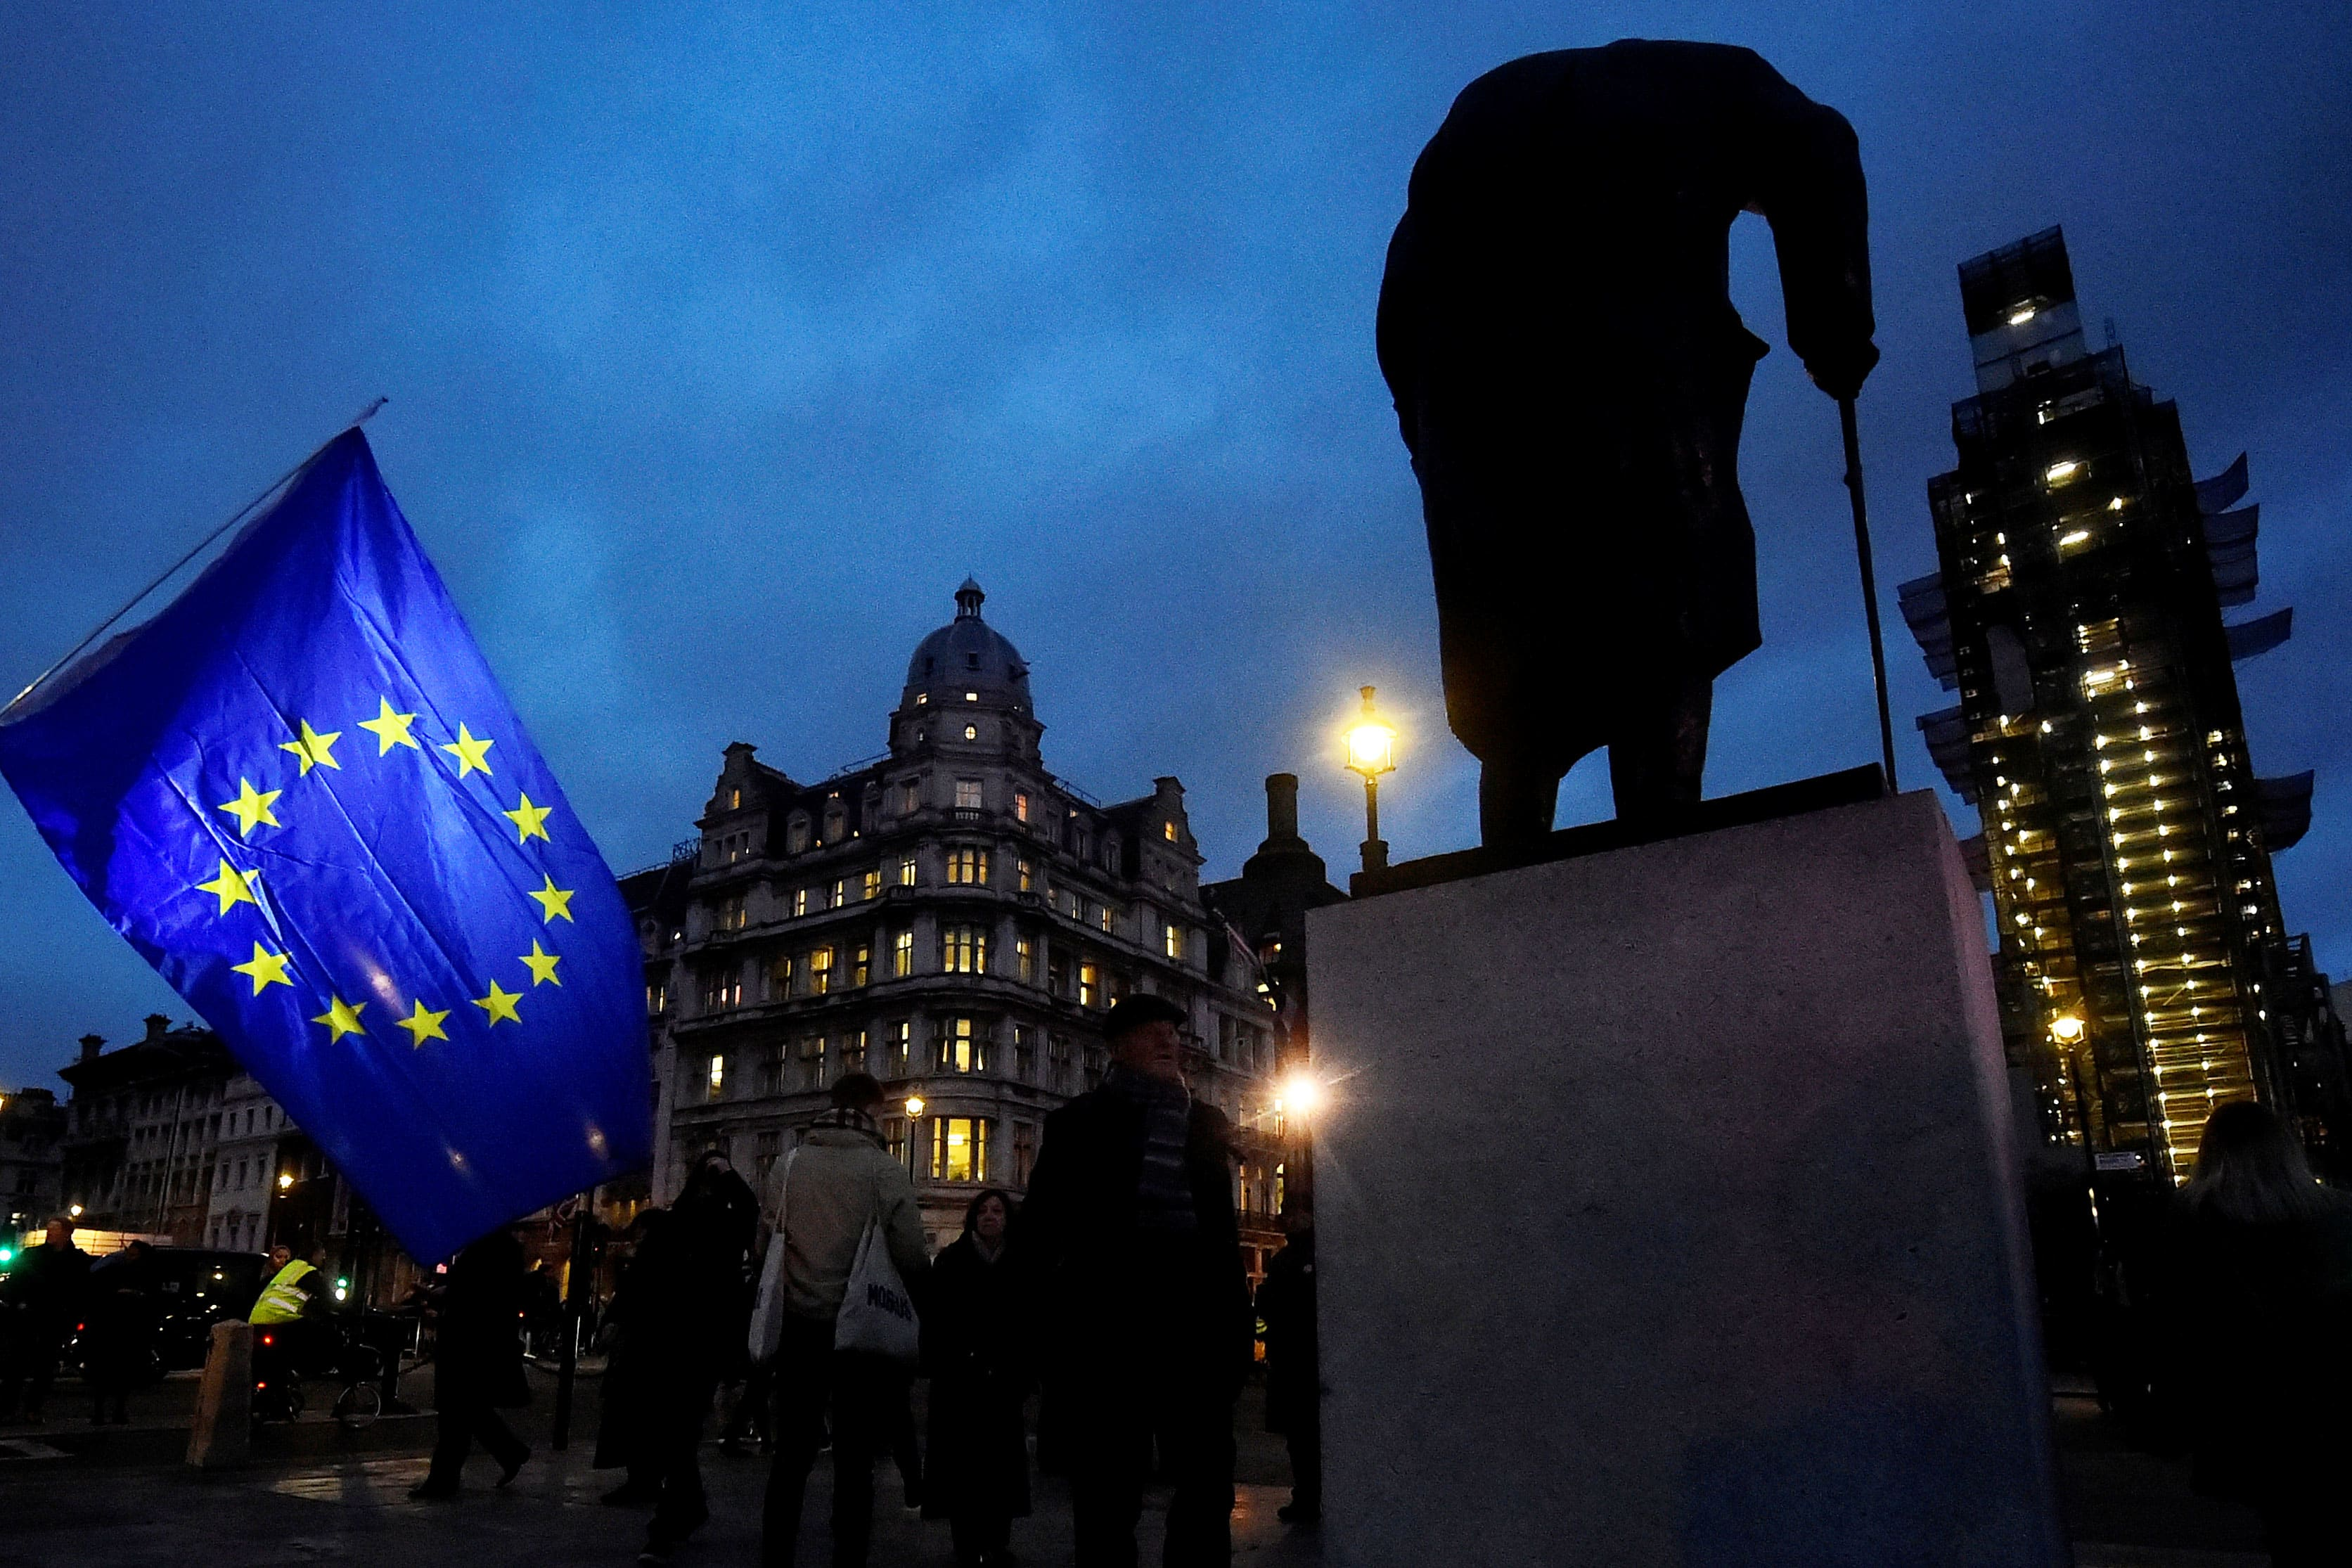 EU begins rethinking fiscal rules as economy slows